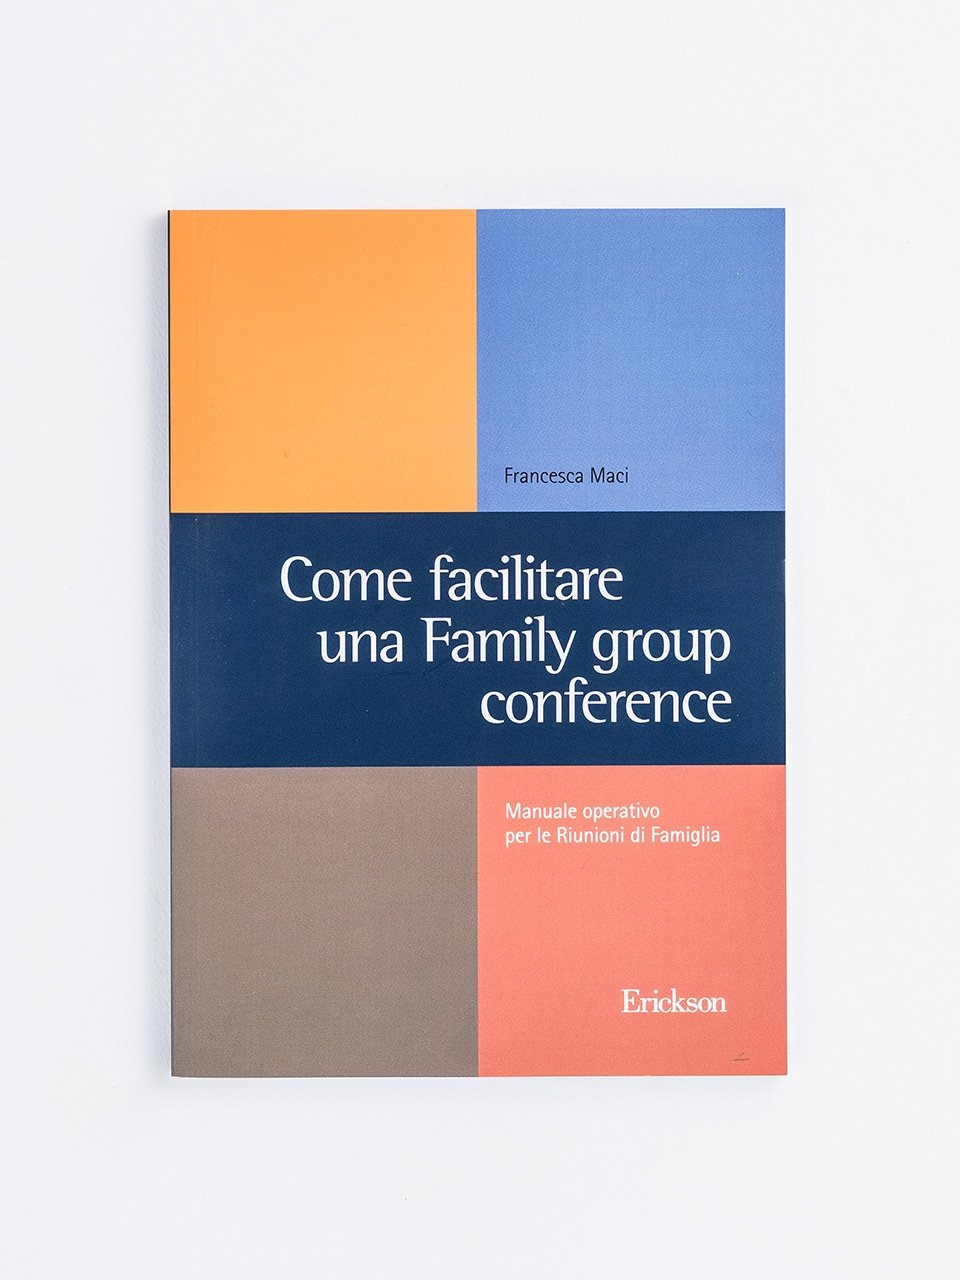 Come facilitare una Family group conference - Esploro il mio corpo e l'ambiente - Libri - Erickson